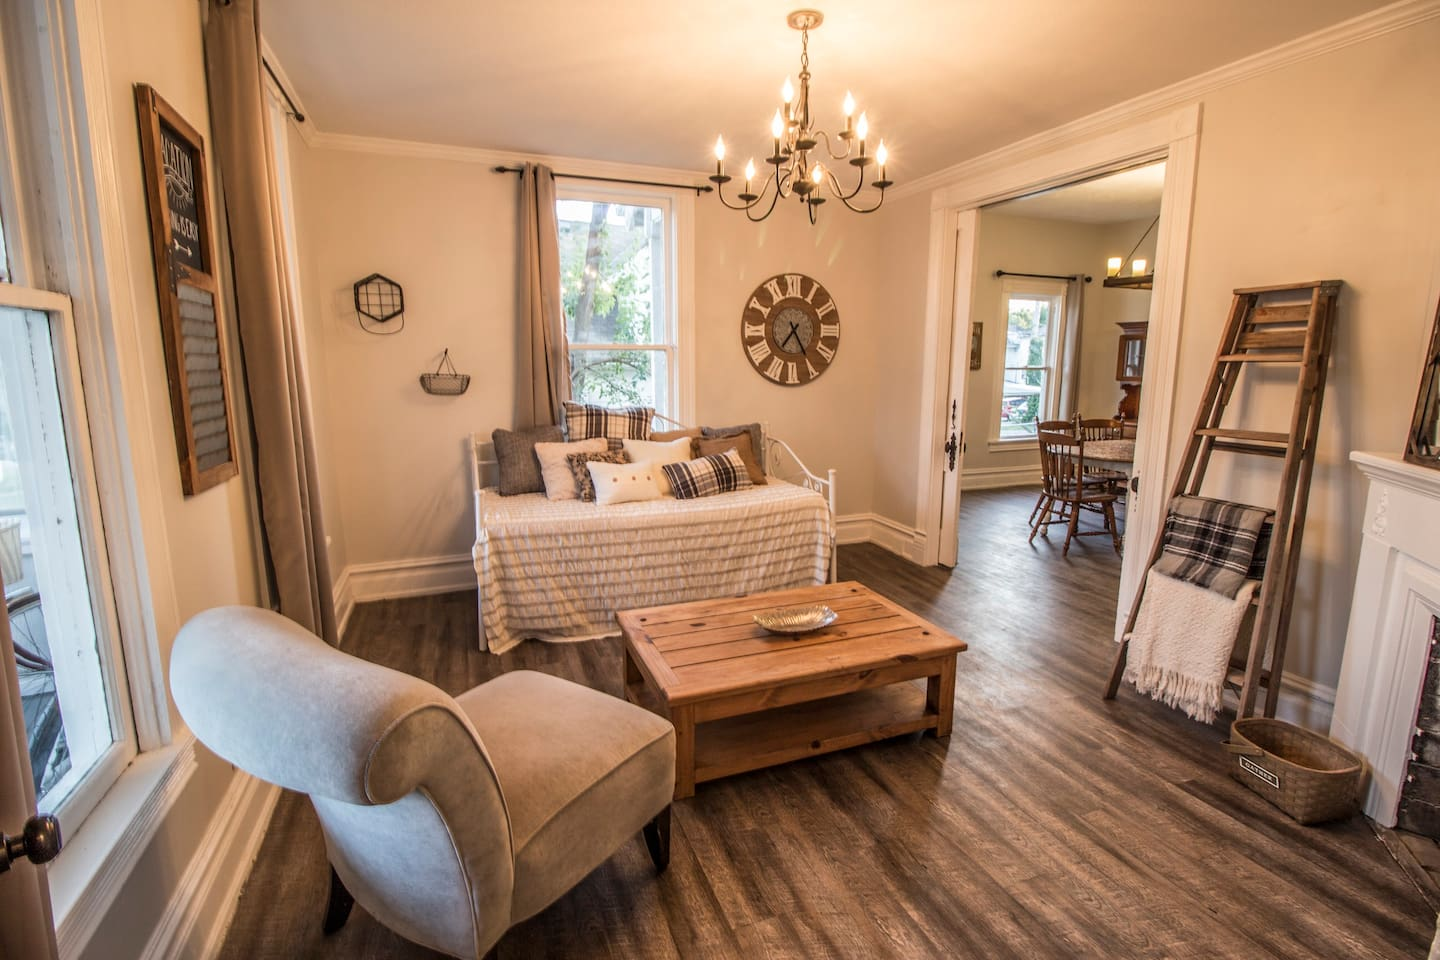 Need a 2nd bedroom?! Living room transforms into a bedroom! Features a daybed with pull out trundle and sliding pocket doors that lock for privacy!